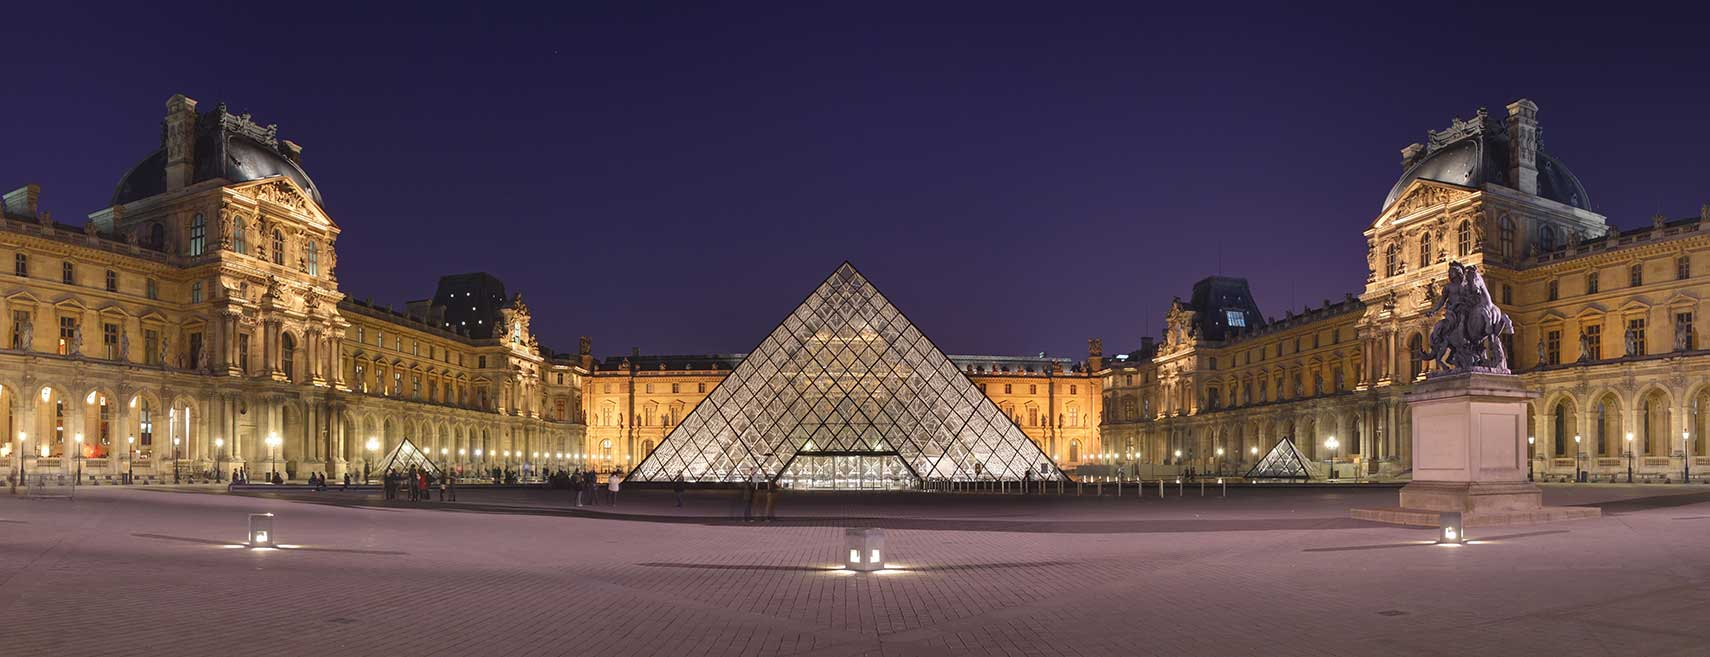 Courtyard of the Louvre Museum with glass pyramid, Paris, France